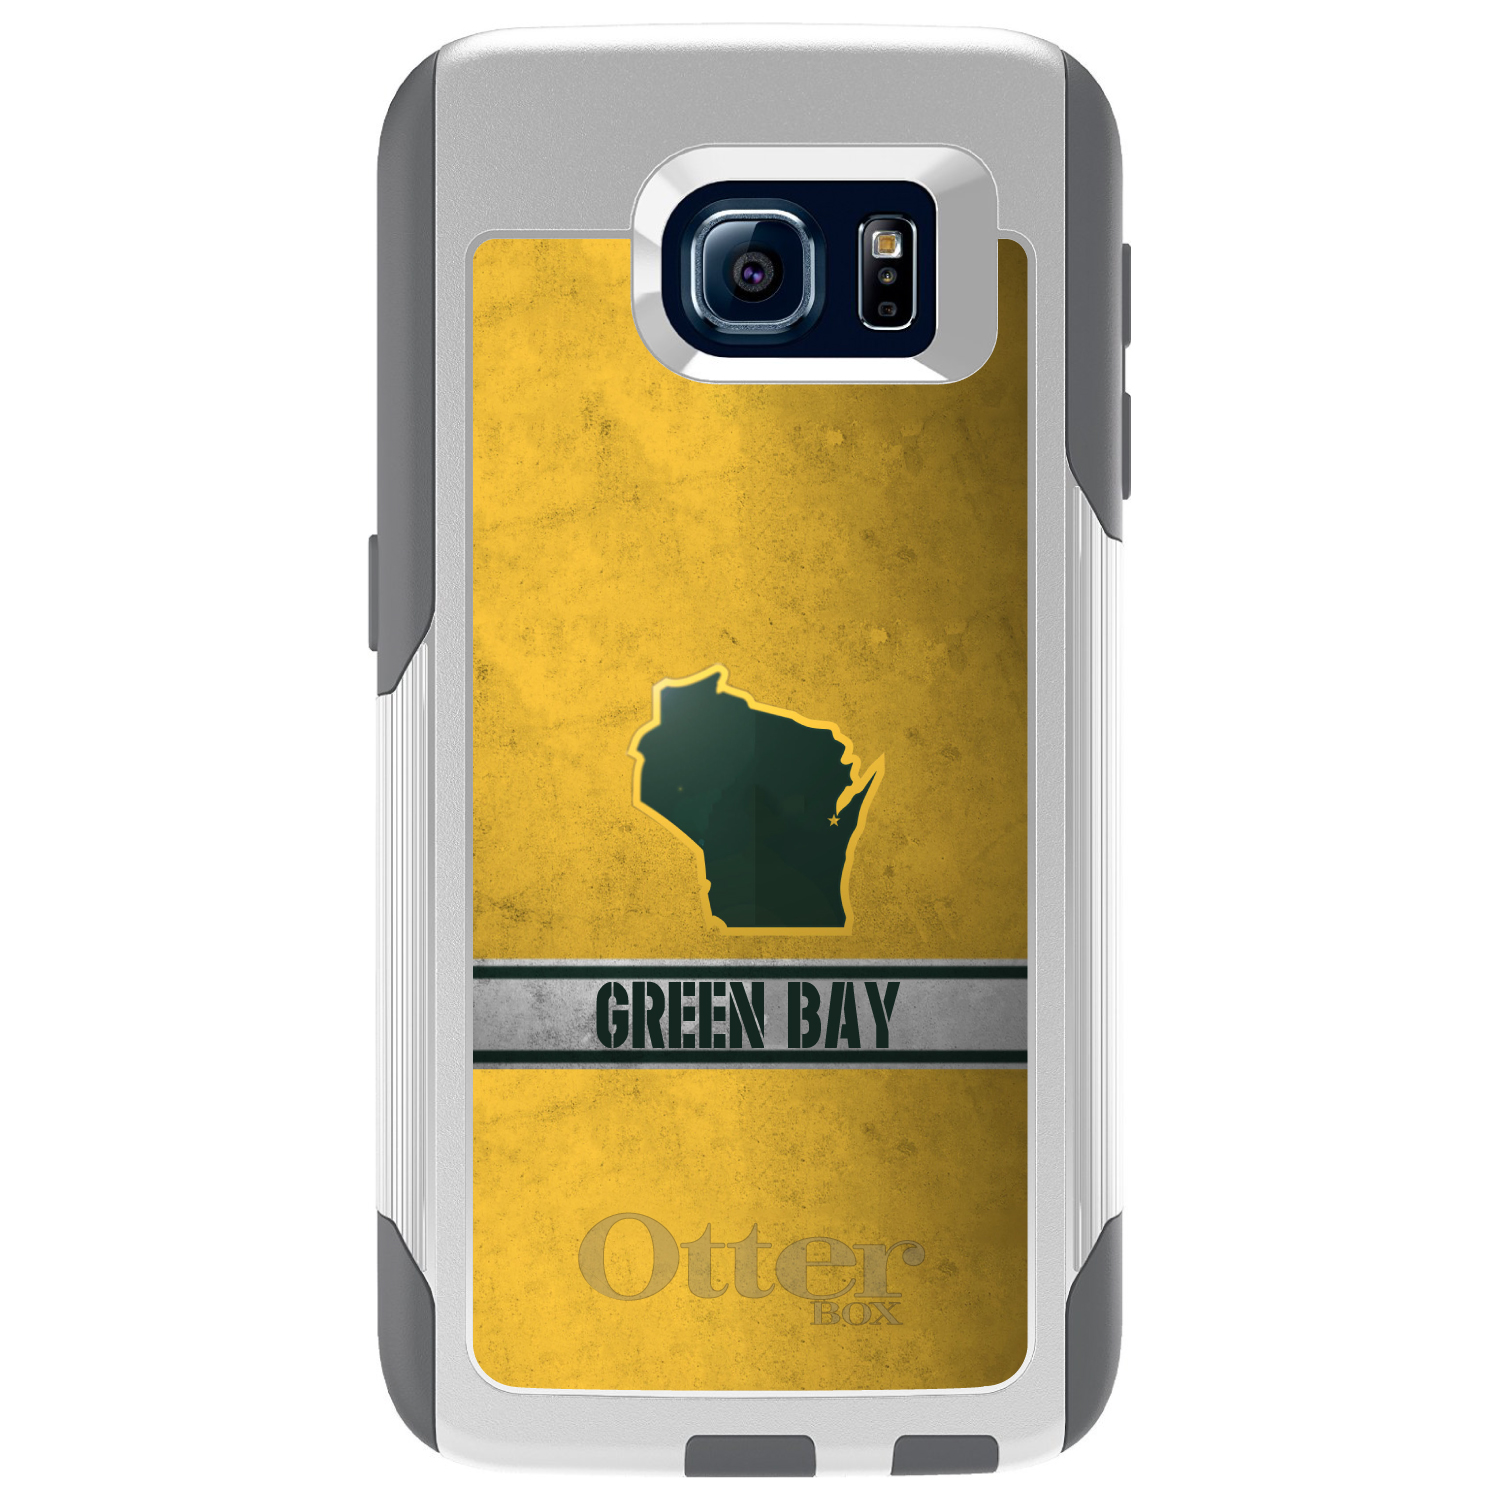 DistinctInk™ Custom White OtterBox Commuter Series Case for Samsung Galaxy S6 - Green Bay Wisconsin